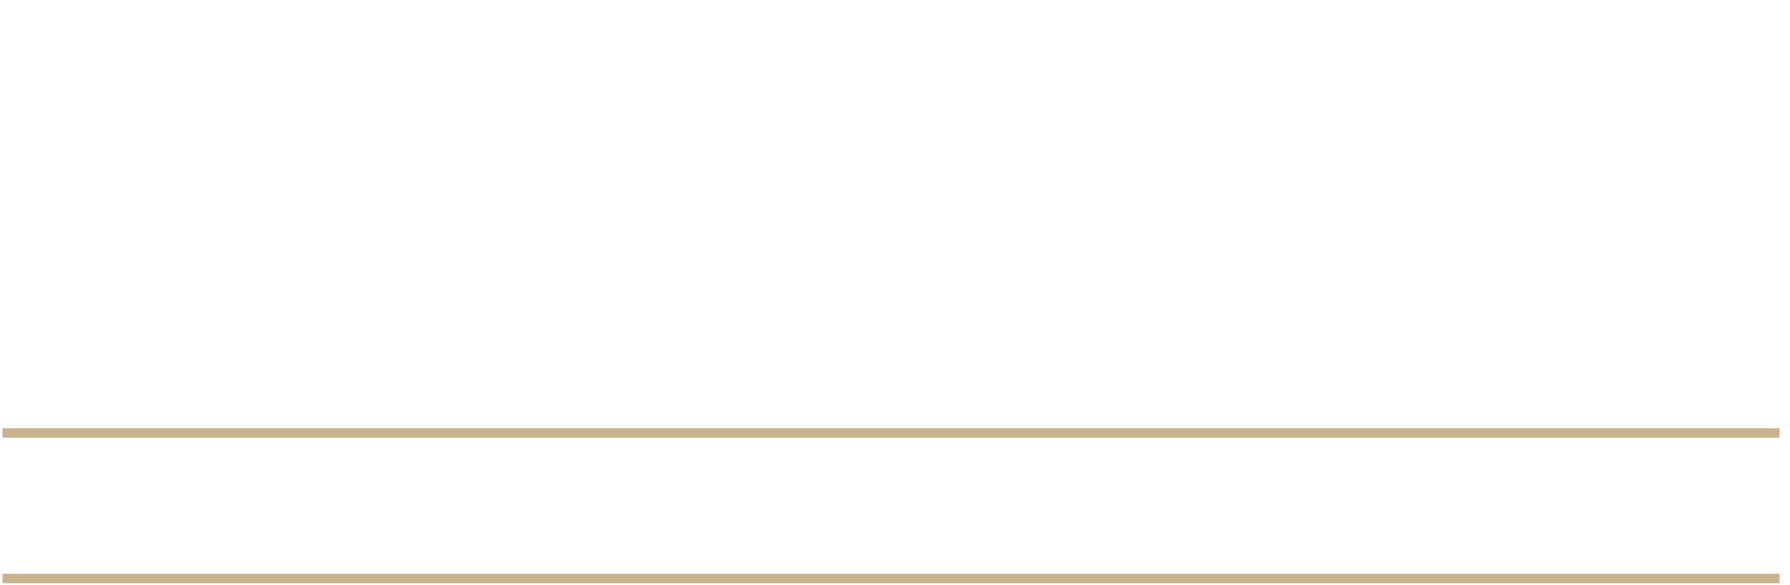 Milken Institute School of Public Health